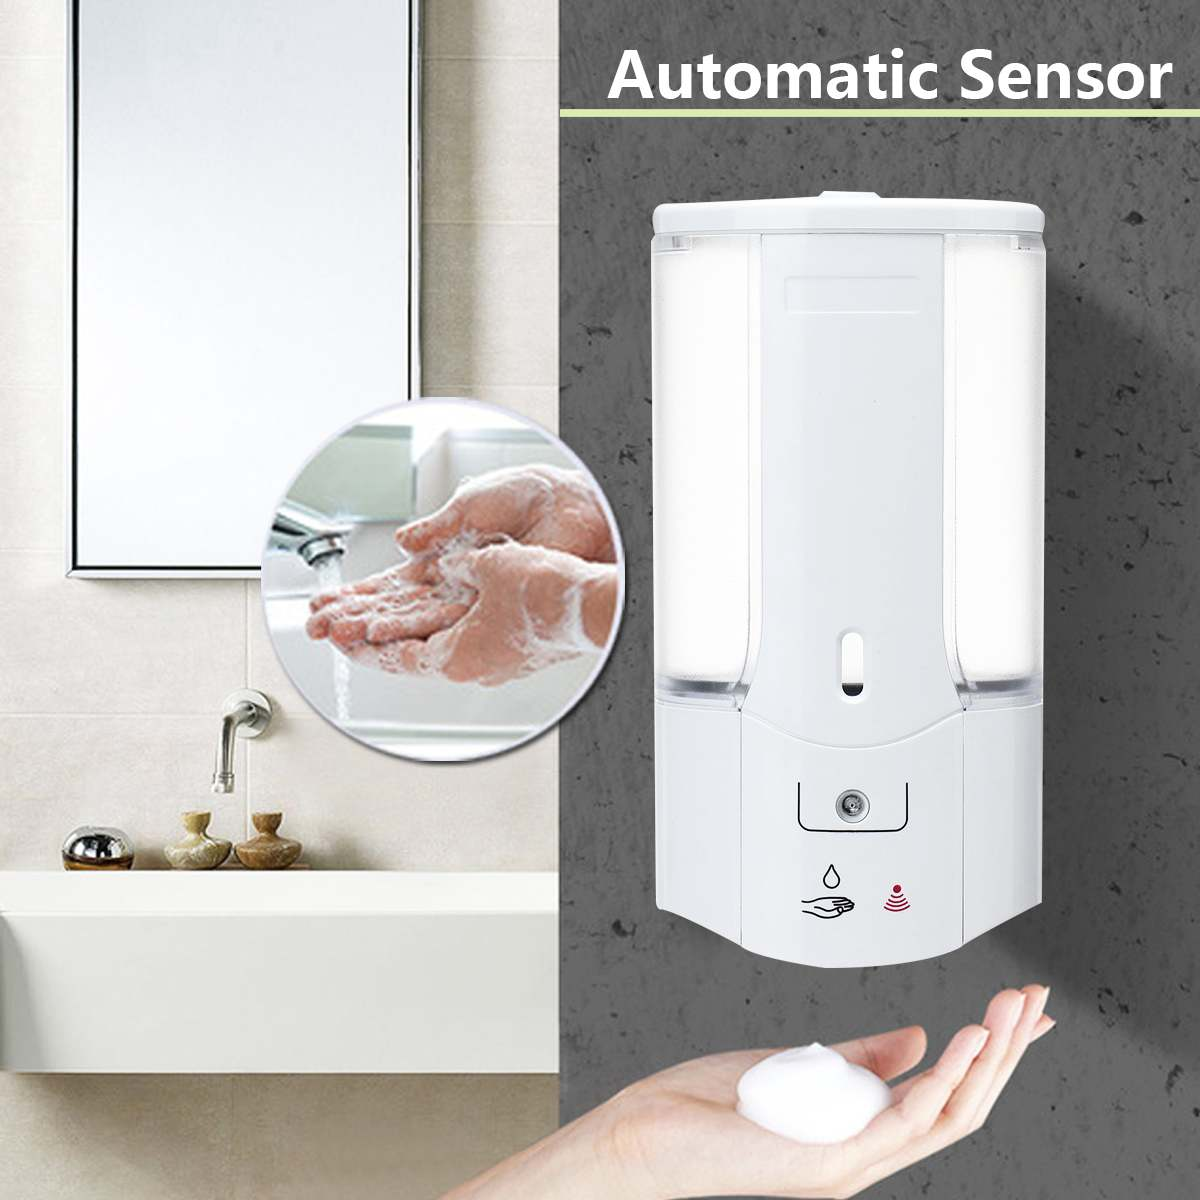 500mL Liquid Soap Dispenser Handfree Automatic Sensor Soap Dispenser Plastic Bathroom Shampoo Dispensers With Cover Wall Mounted